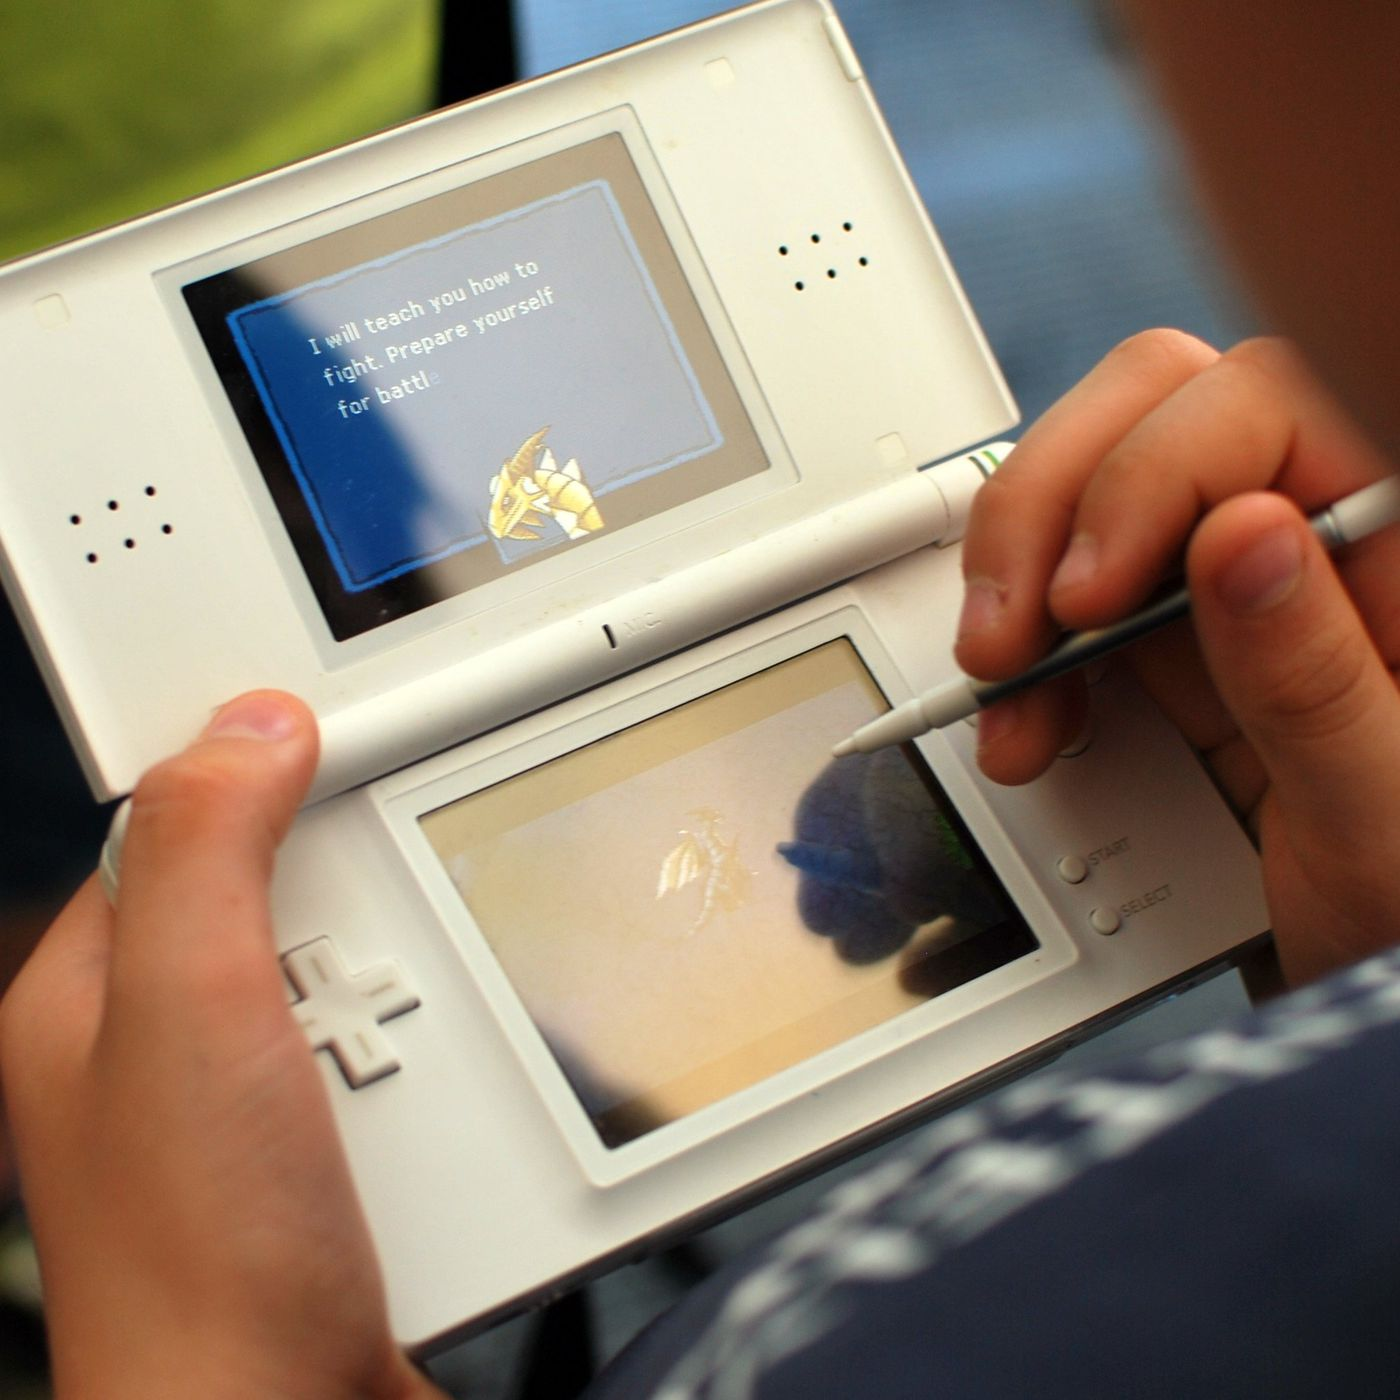 The DS saved Nintendo while destroying handheld gaming as we